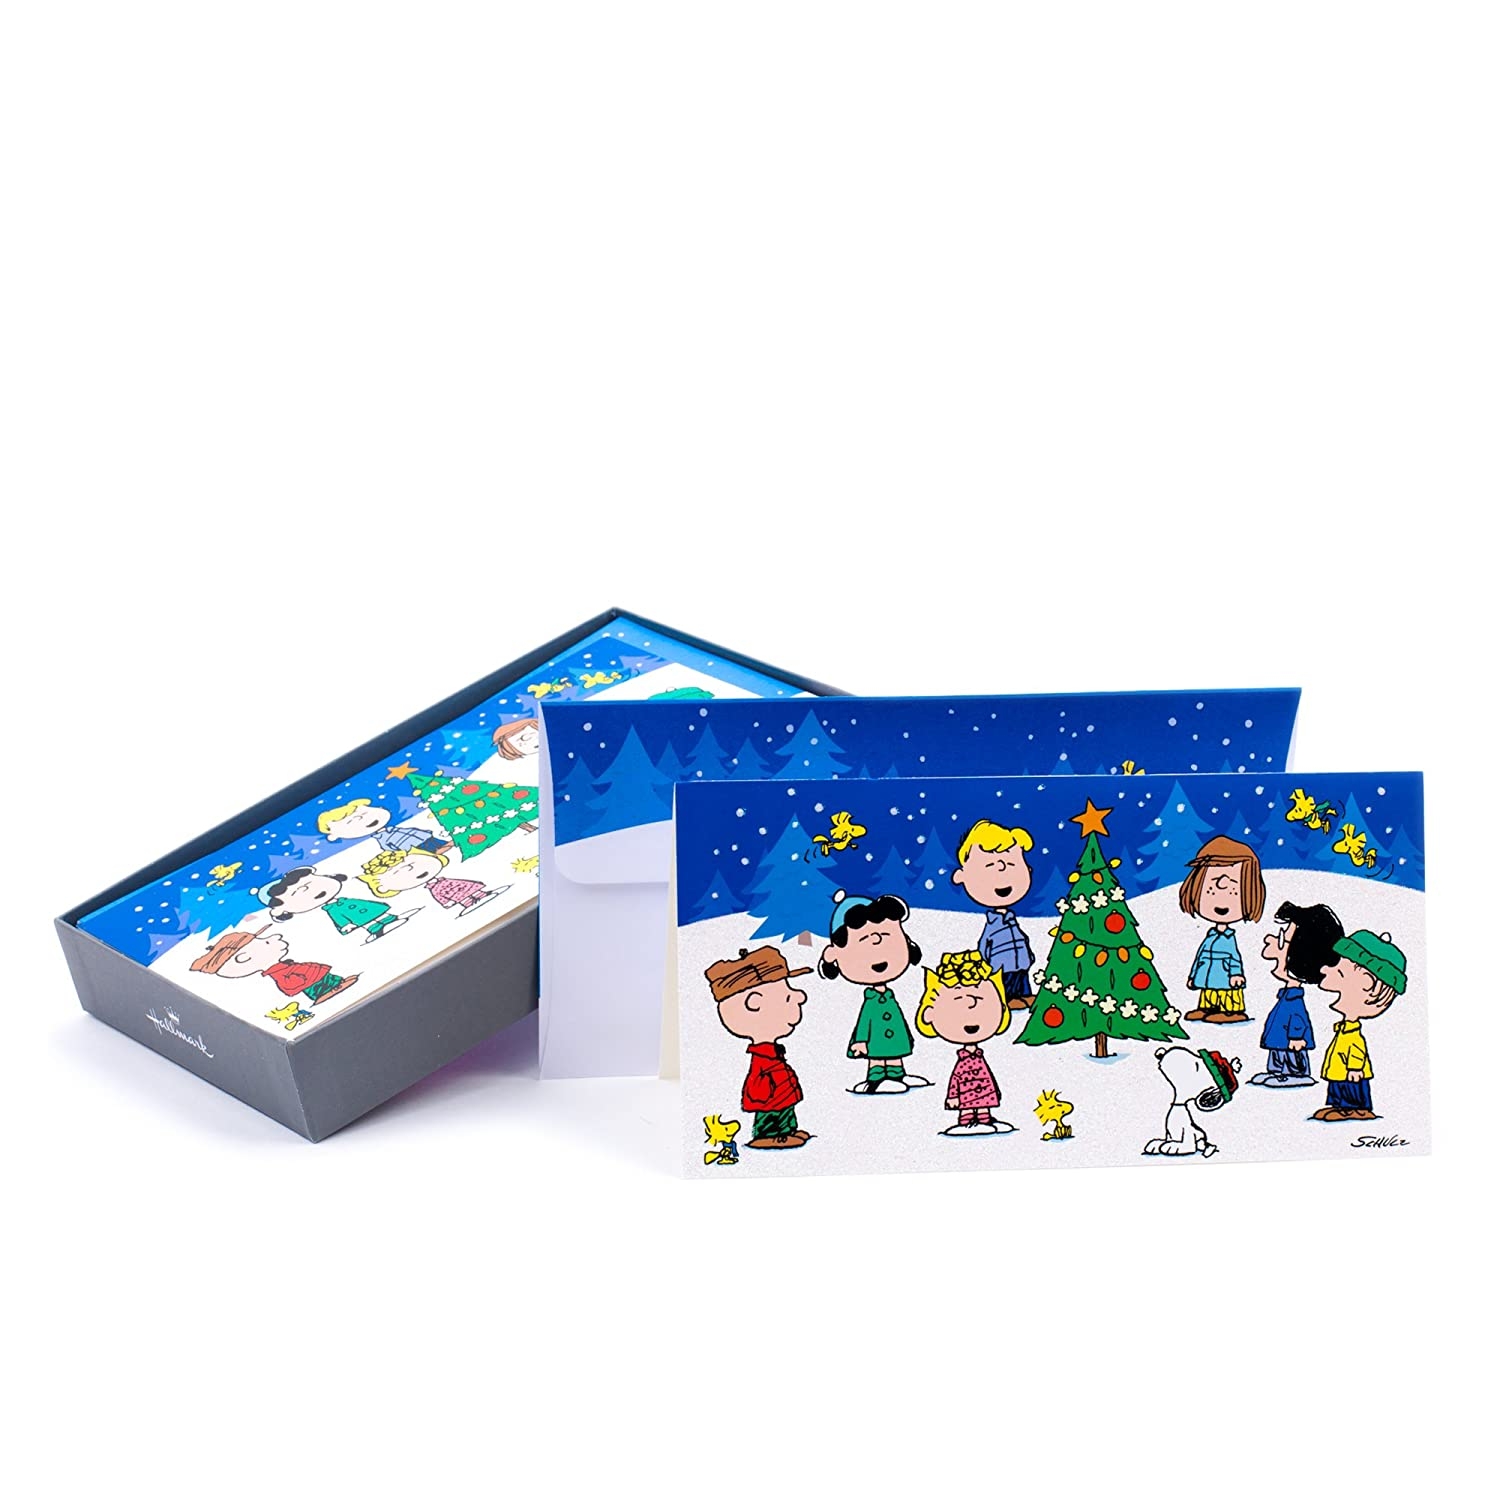 Amazon.com: Hallmark Christmas Boxed Cards, Peanuts Gang (16 Cards ...